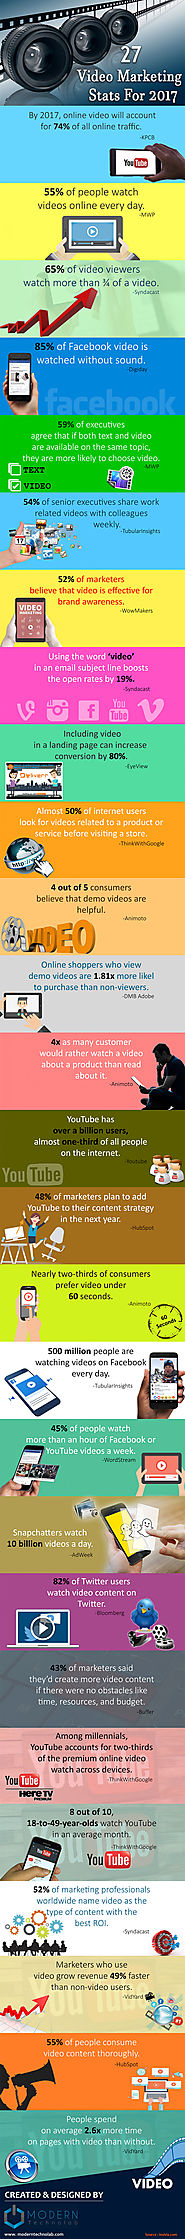 Video Marketing Stats 2017 (Infographics)